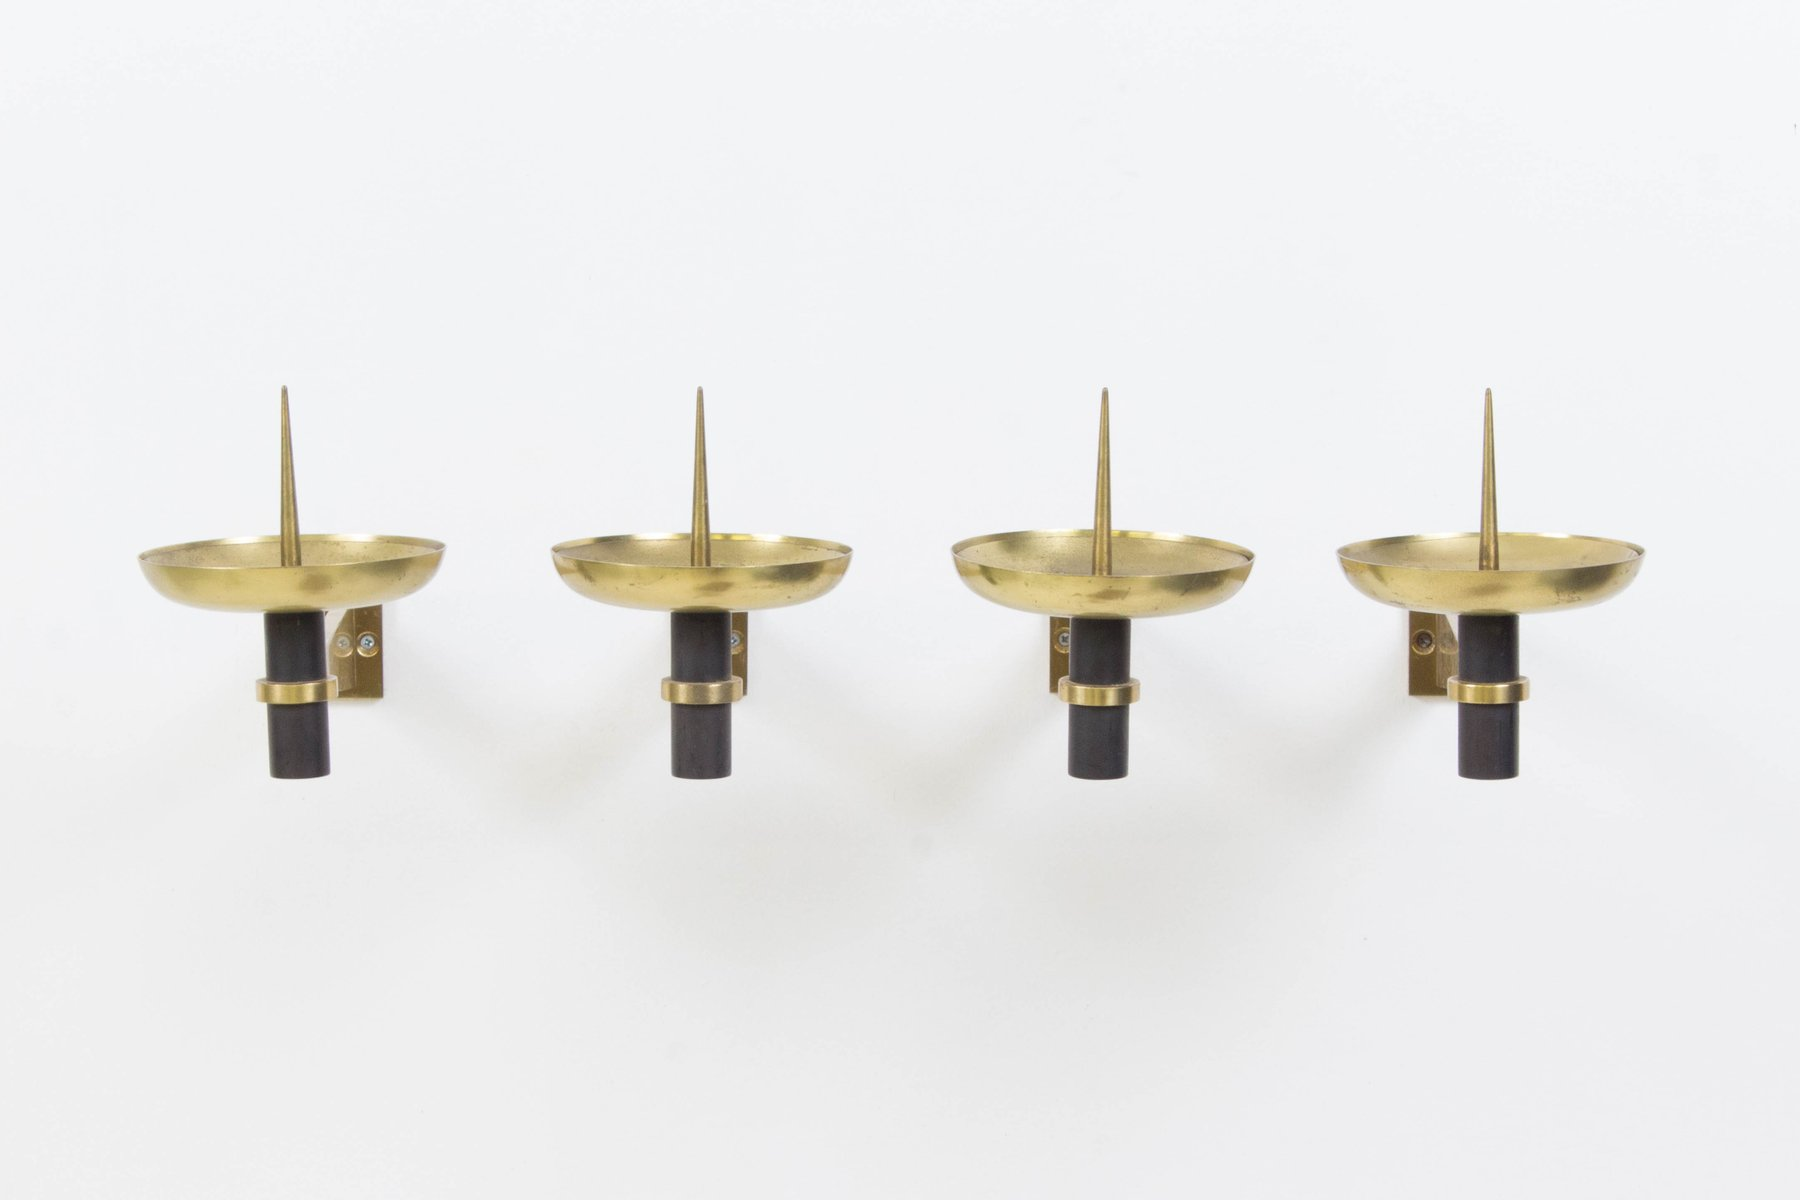 Mid Century French Modern Wall Candle Sconces 1950s Set Of 4 For